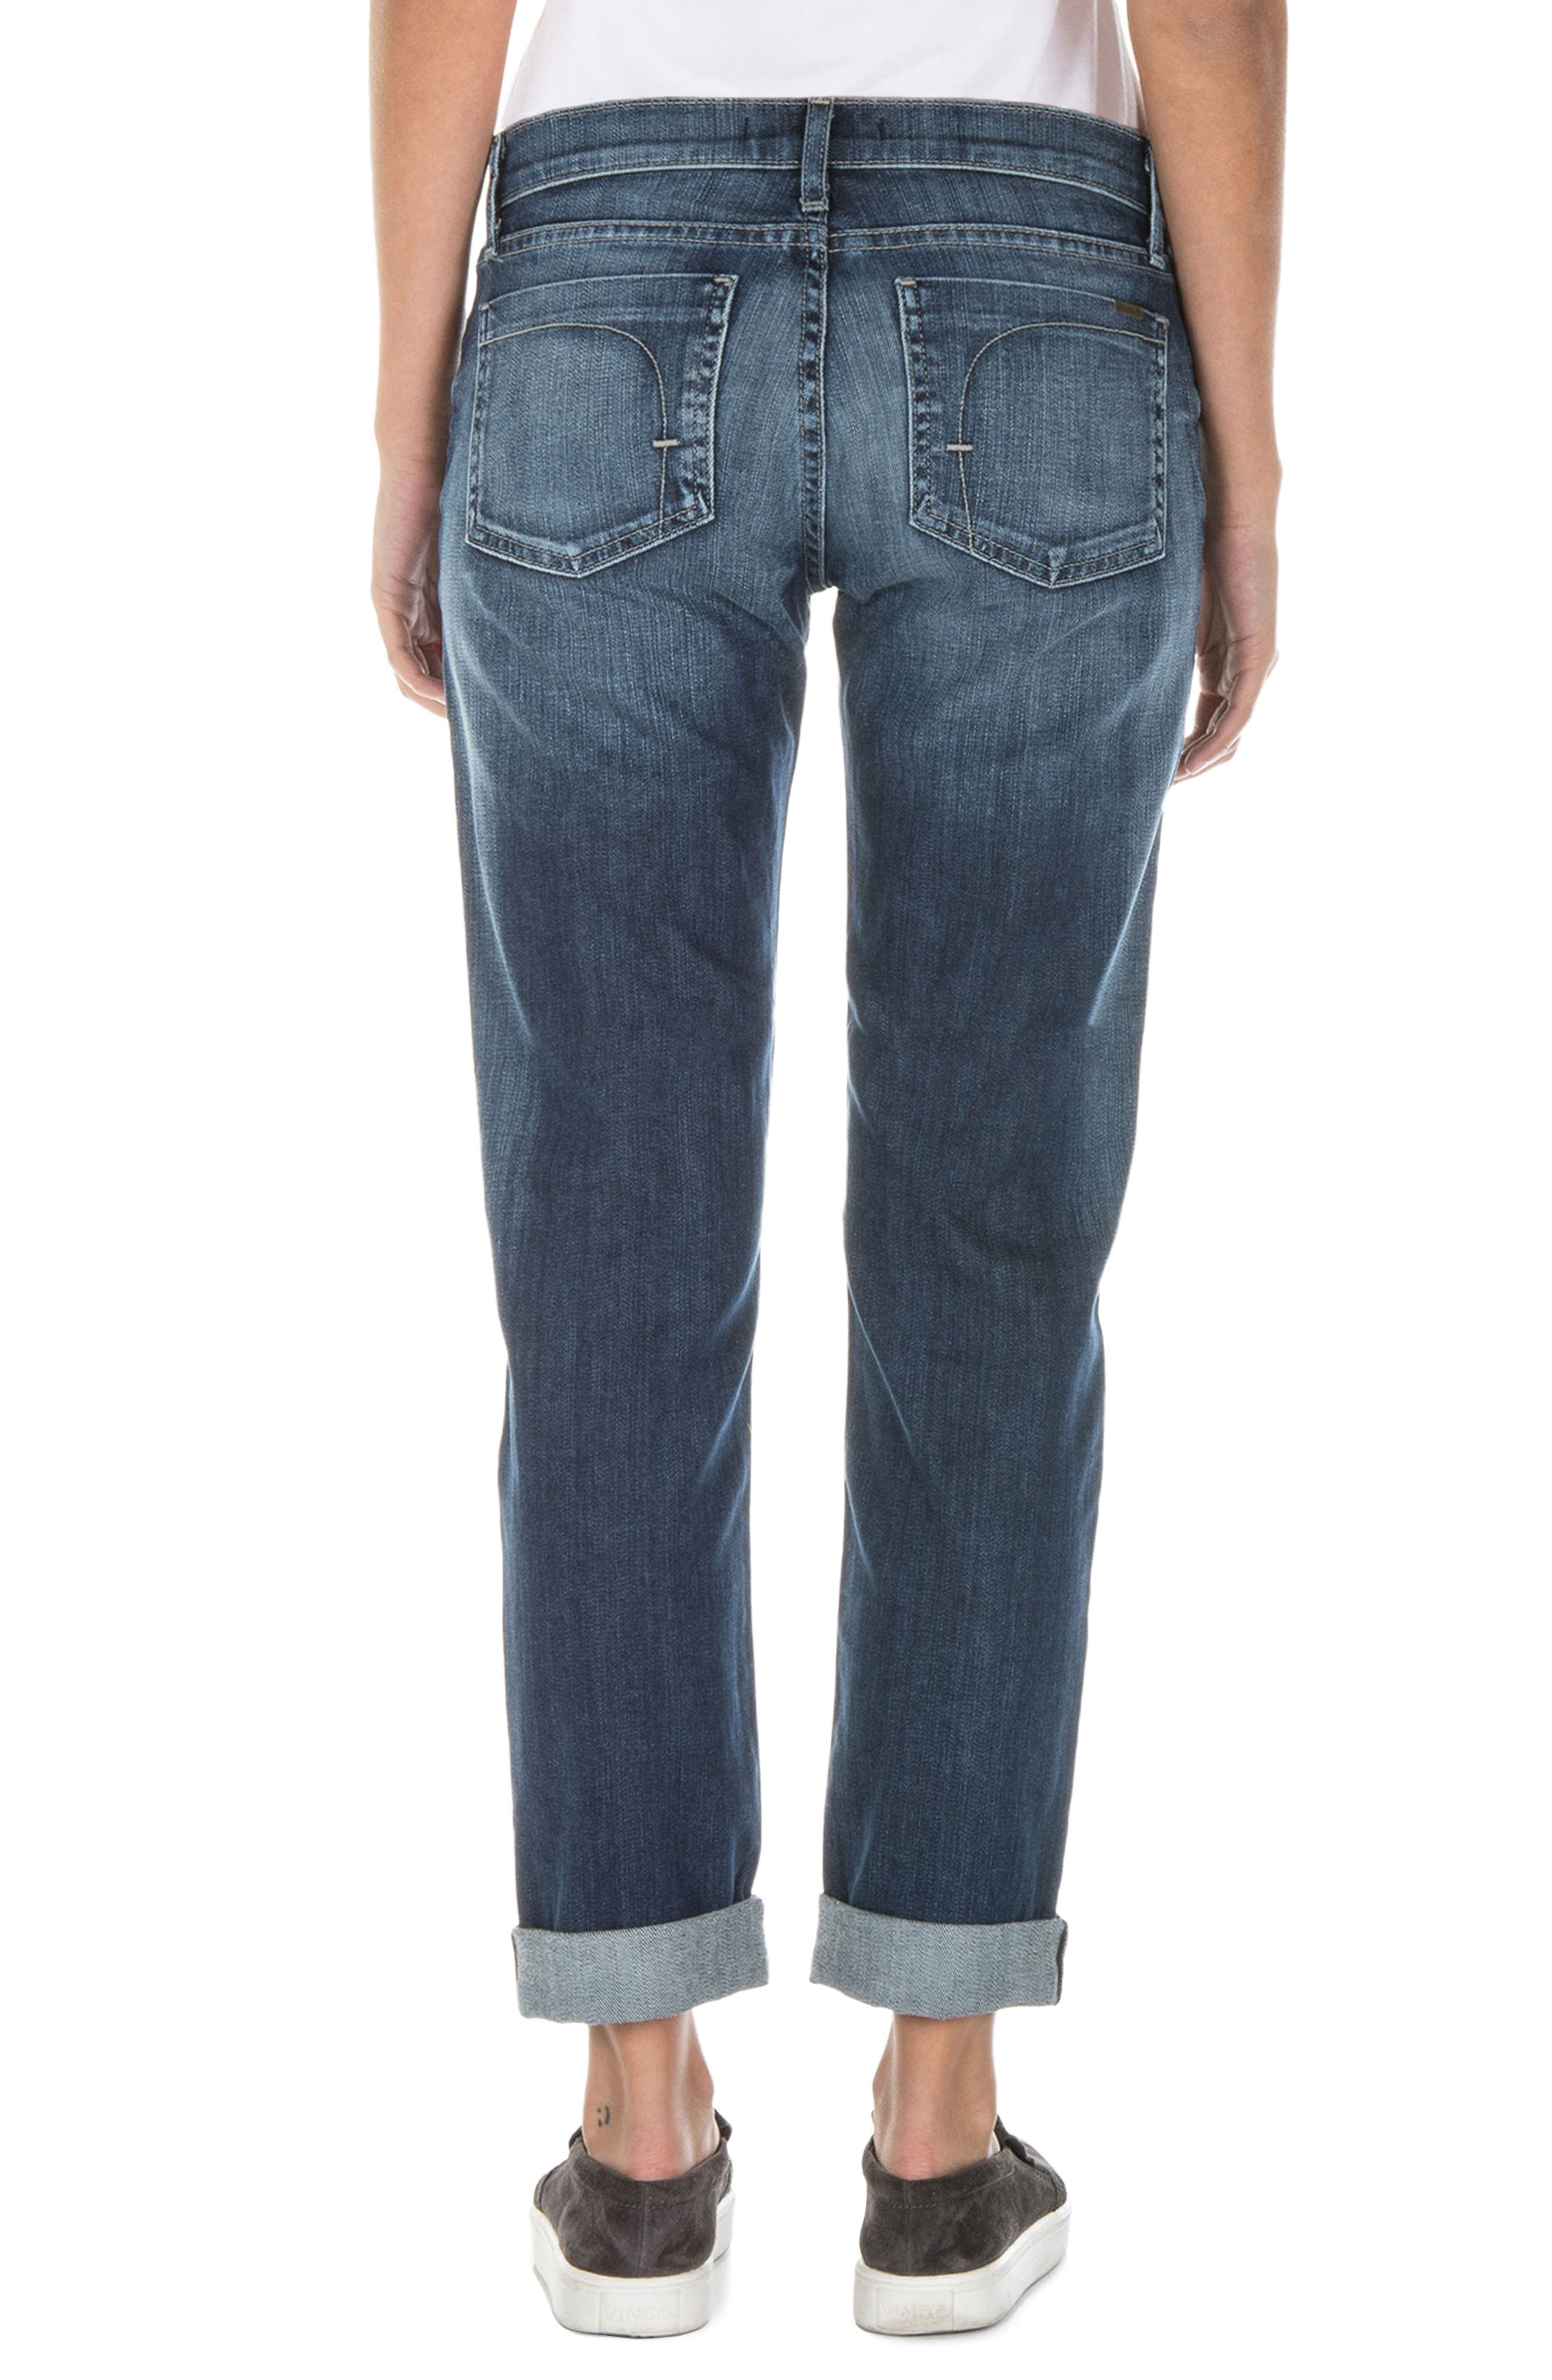 Alternate Image 3  - Fidelity Denim Axl Girlfriend Jeans (Exile Vintage)